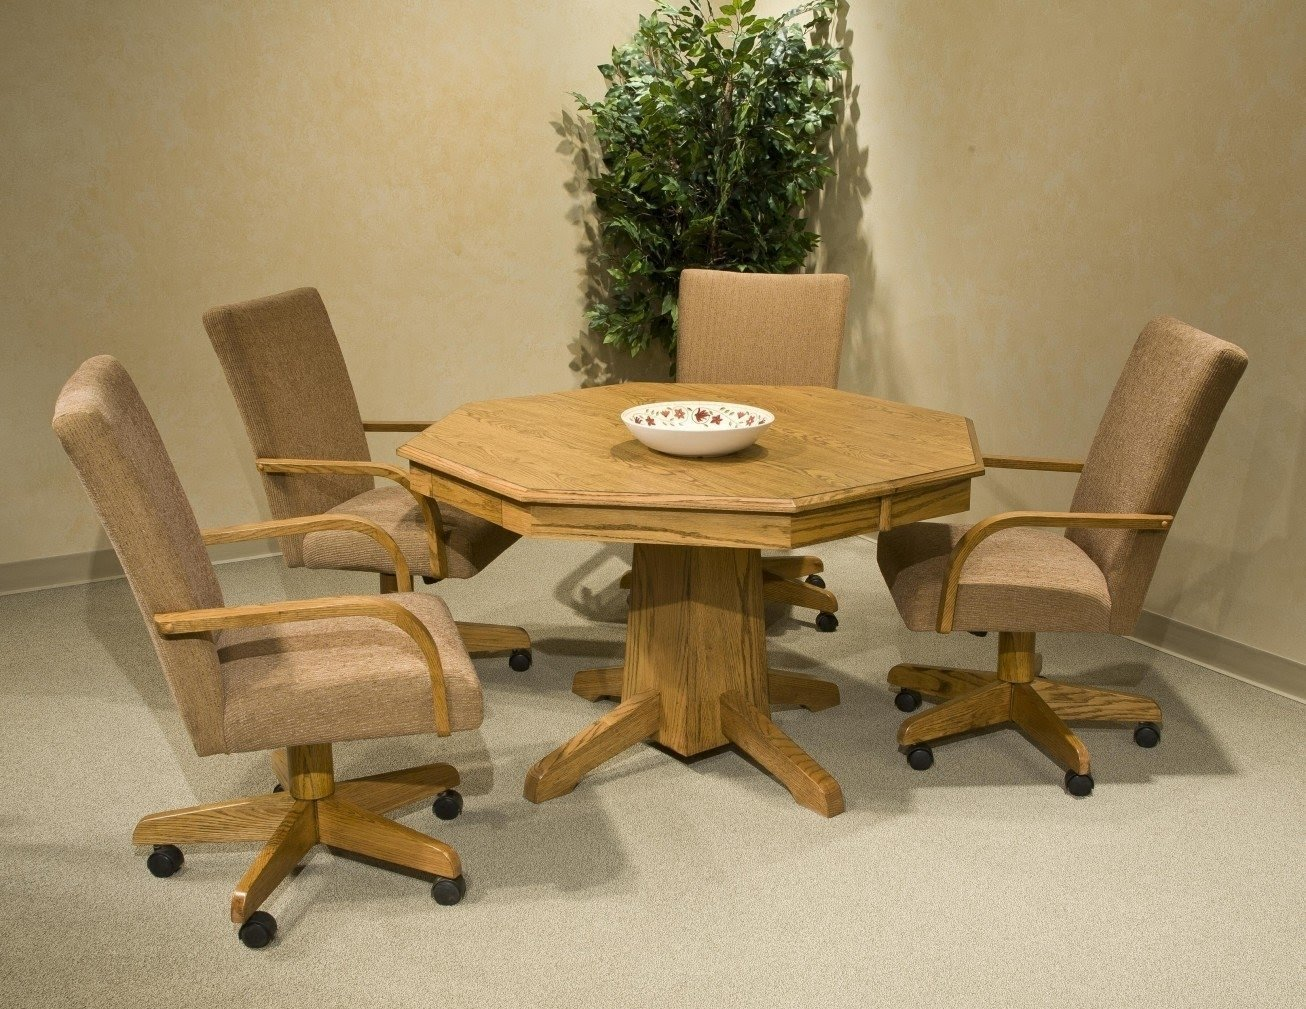 Dinette Chairs With Casters And Arms. Make In Functional .